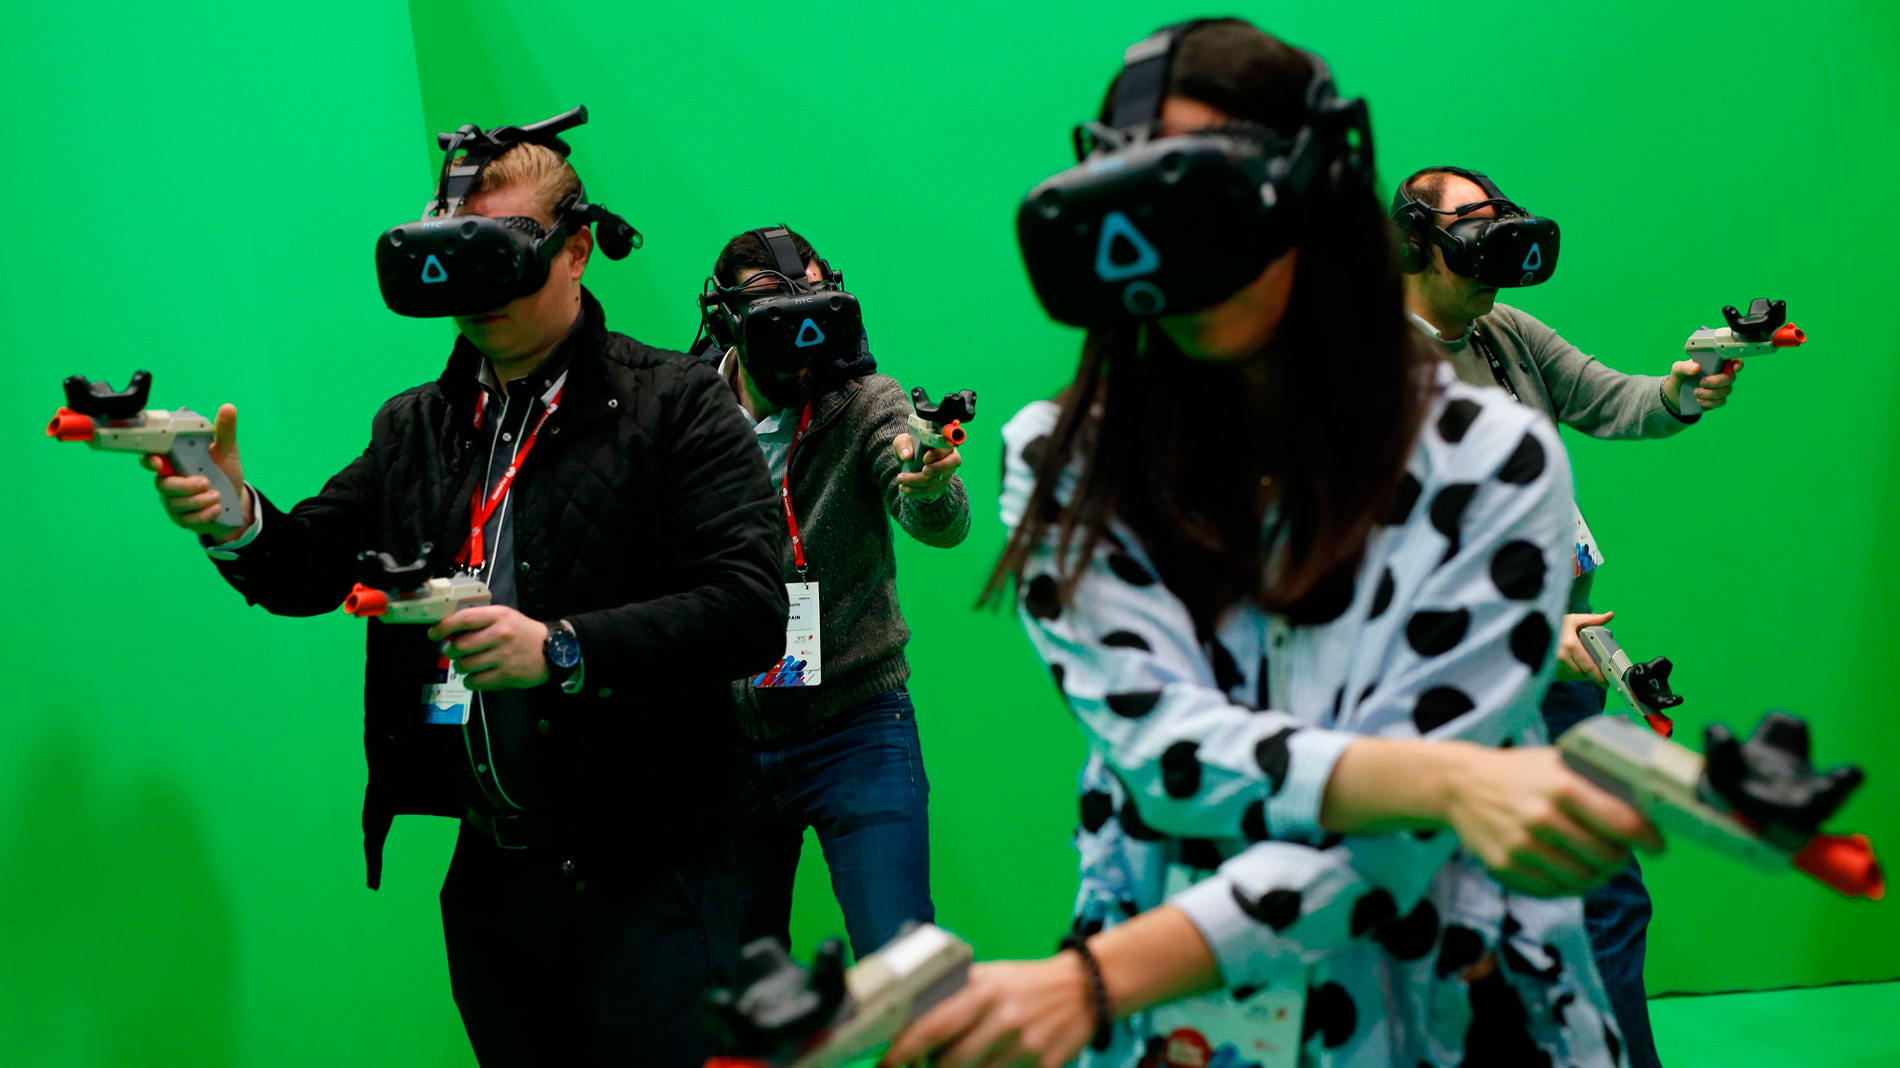 La realidad virtual toma el Mobile World Congress